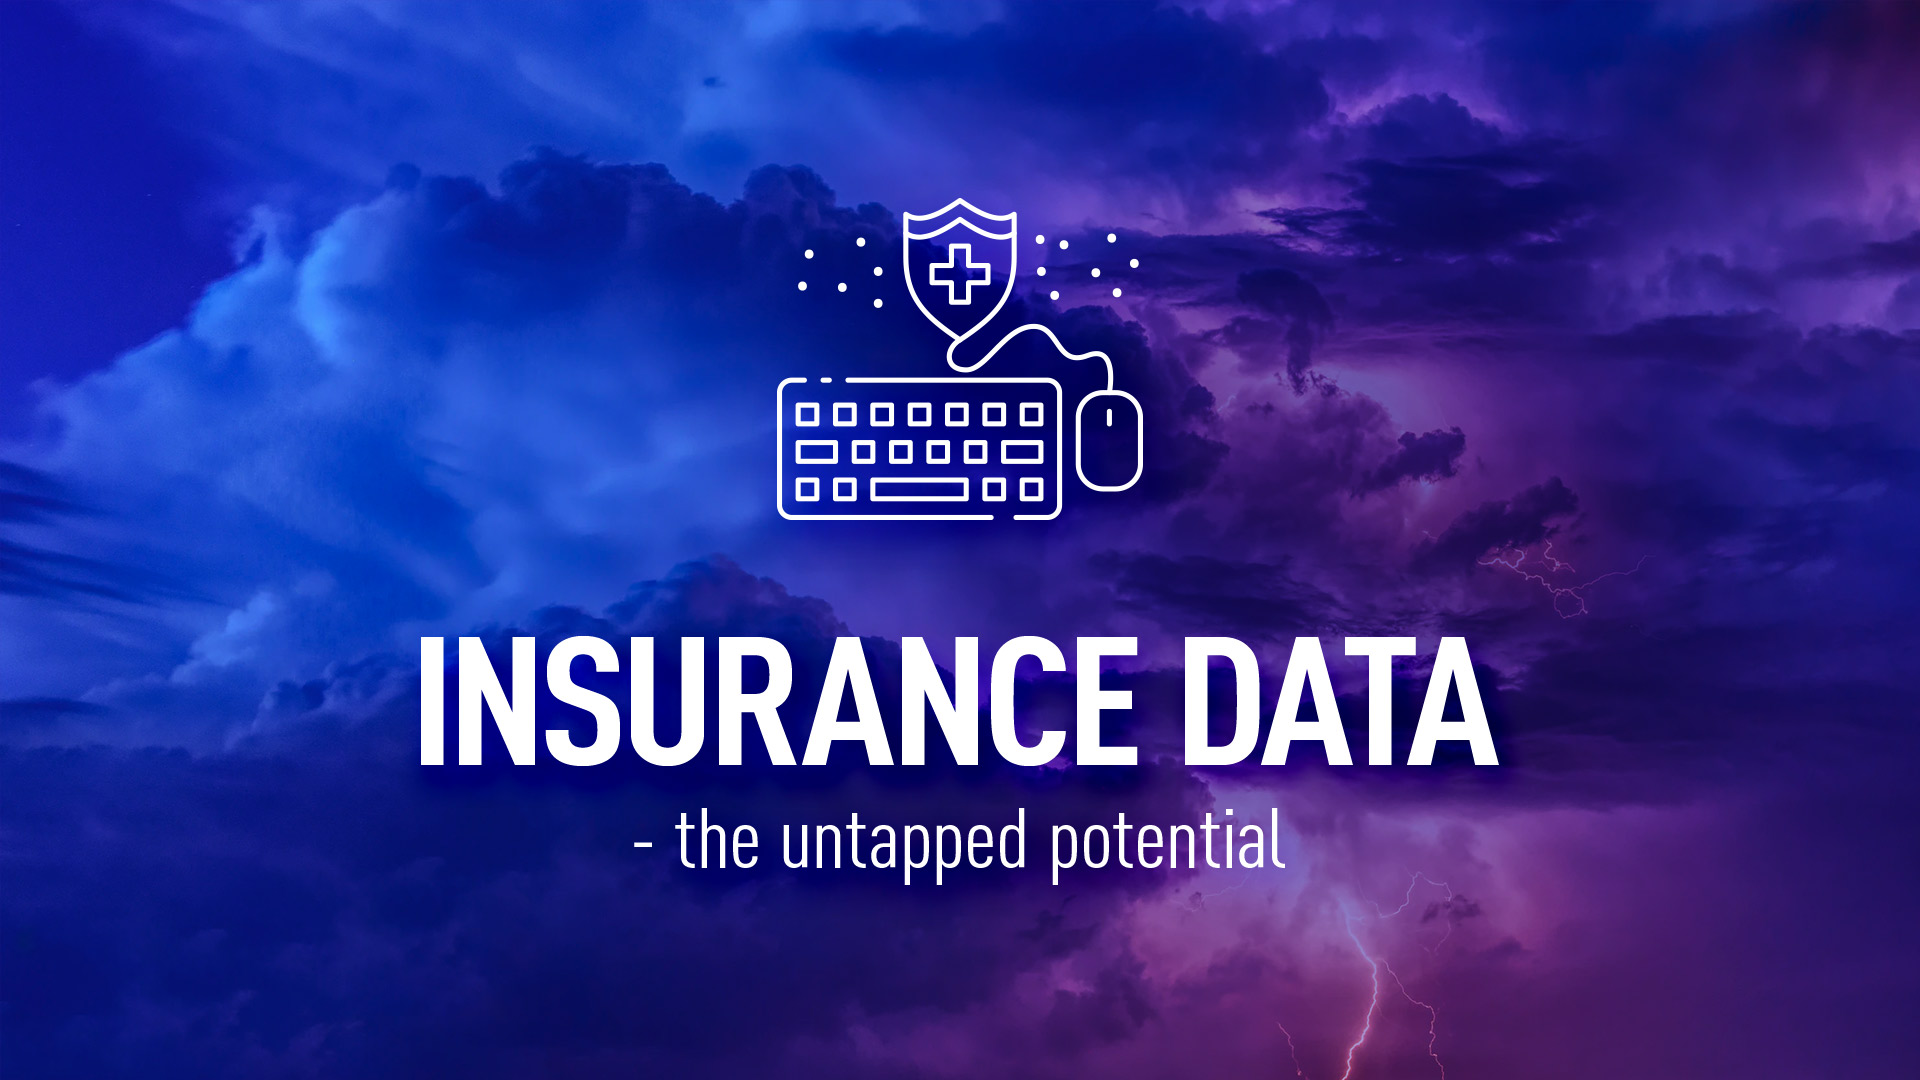 Insurance data - the untapped potential